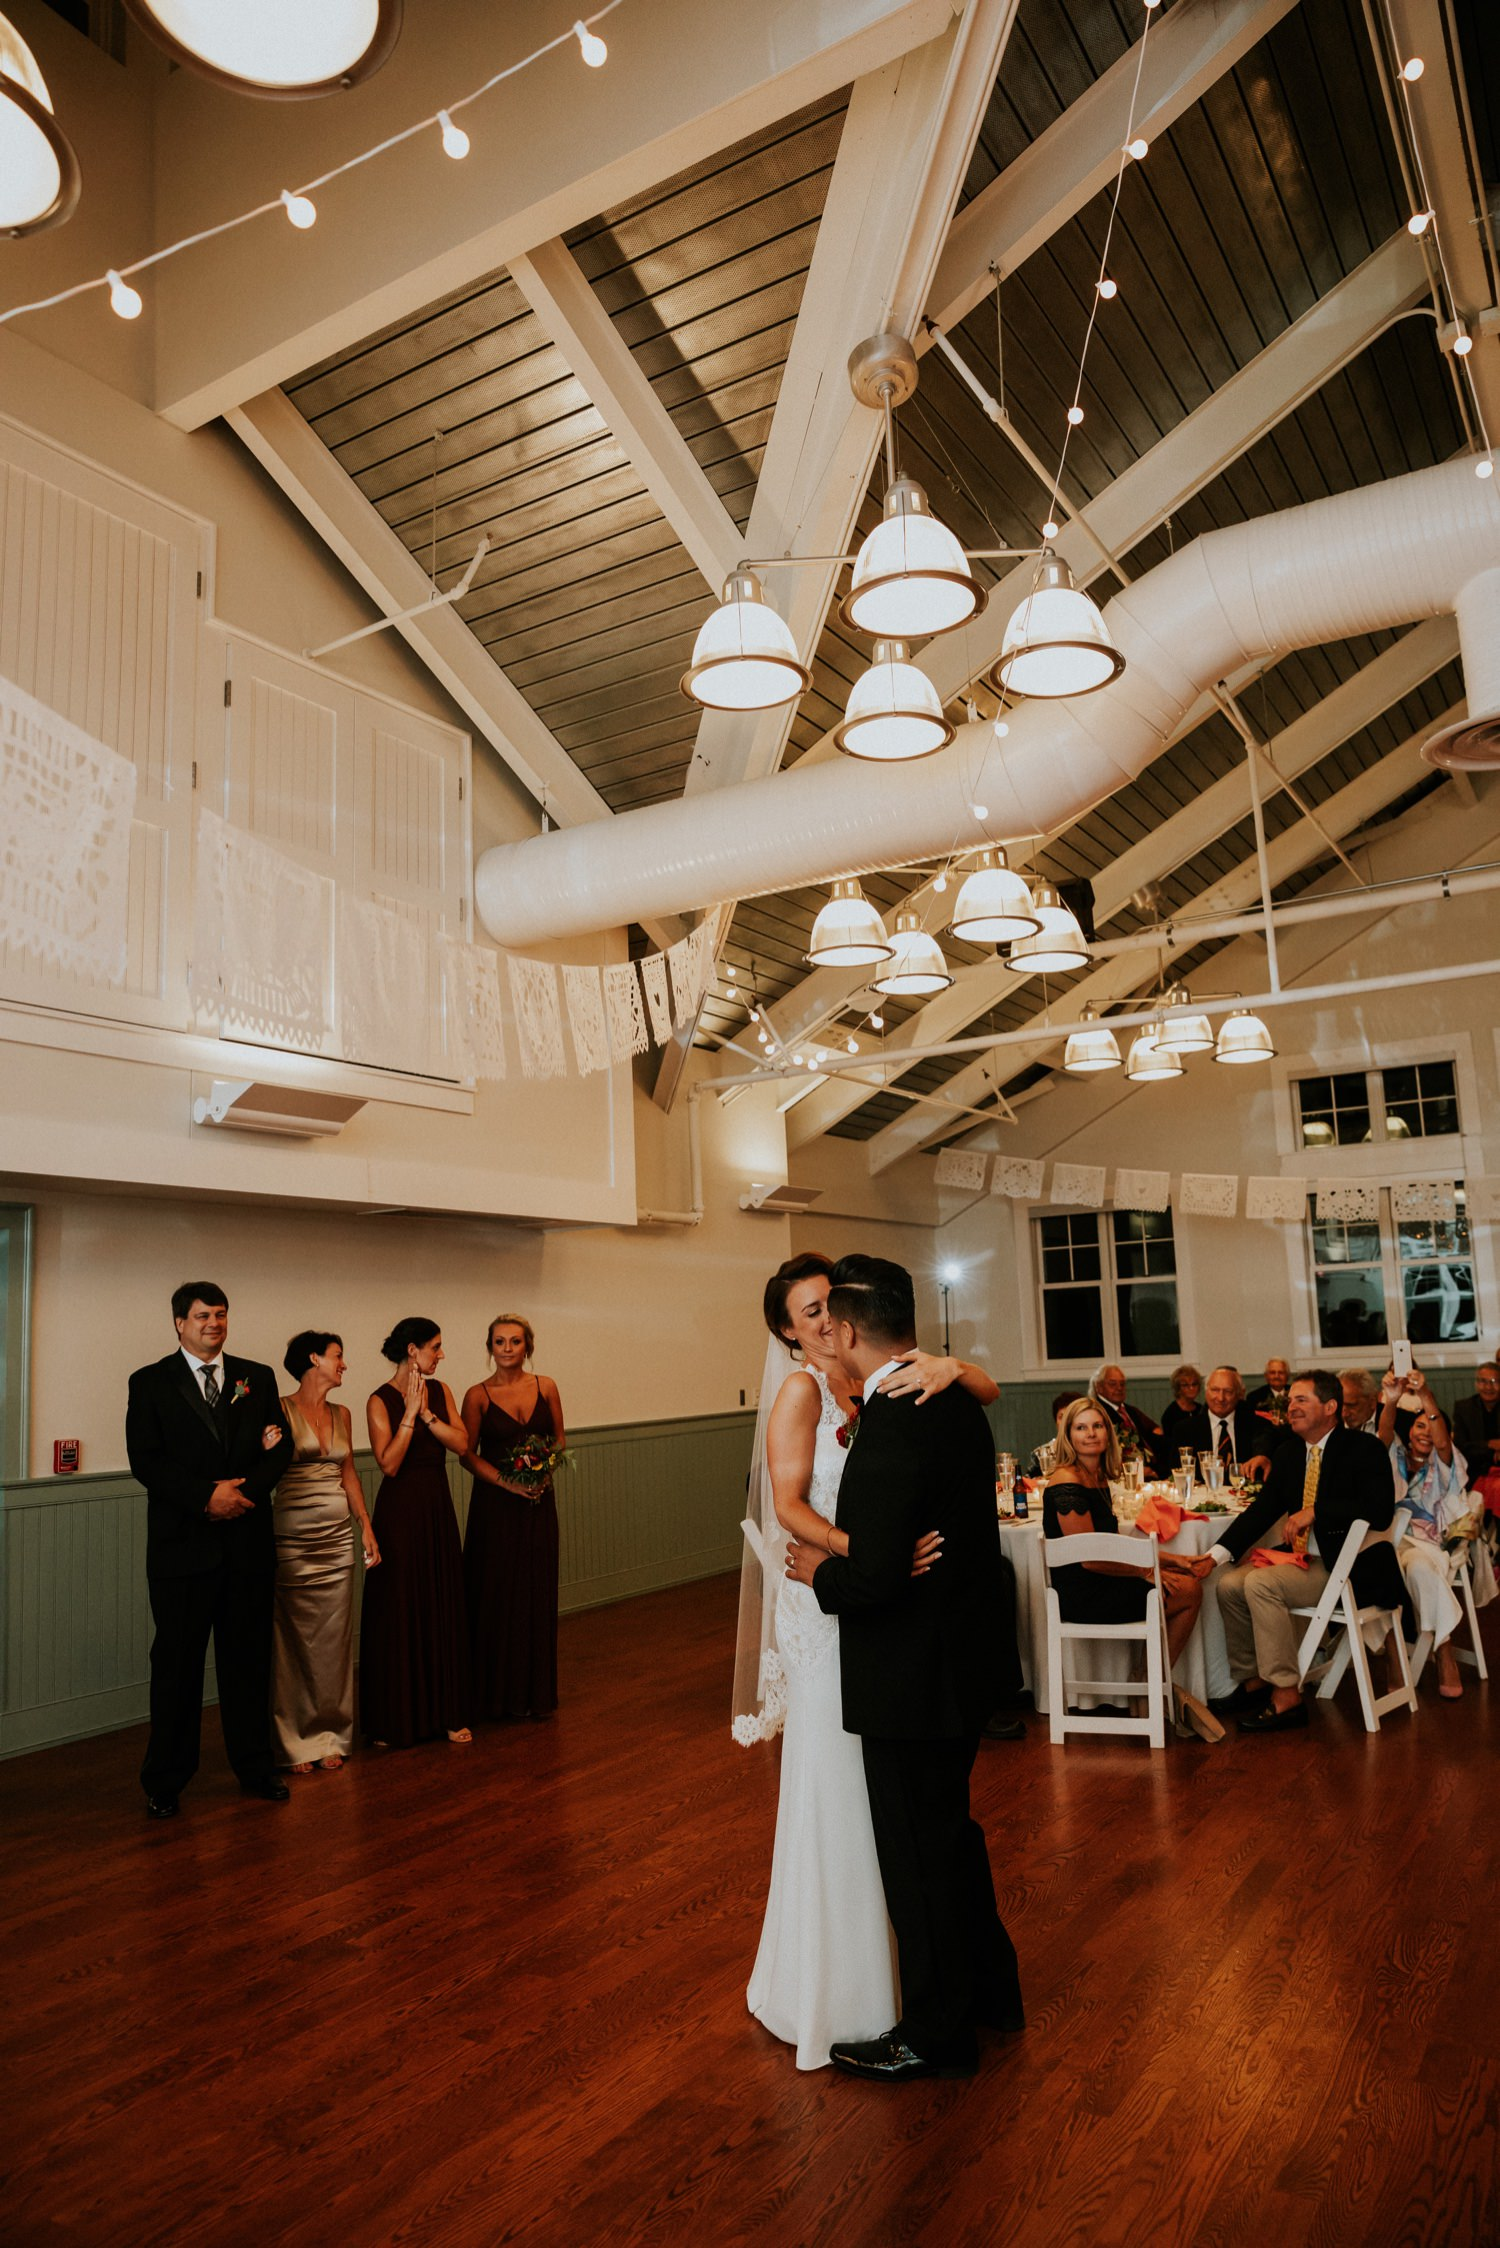 First Dance, Connecticut Wedding, Glastonbury Boathouse Wedding, Connecticut Wedding Photographer, Glastonbury Wedding Photographer, Connecticut Wedding Photography, Connecticut Bride, Lovely Bride, Glastonbury Connecticut Wedding Photographer, Glastonbury Connecticut Wedding, Lake Wedding, Lake Ceremony, BOHO Wedding, Mexican Wedding, Mexican Wedding Inspiration, Multicultural Wedding, Creative Wedding Photography